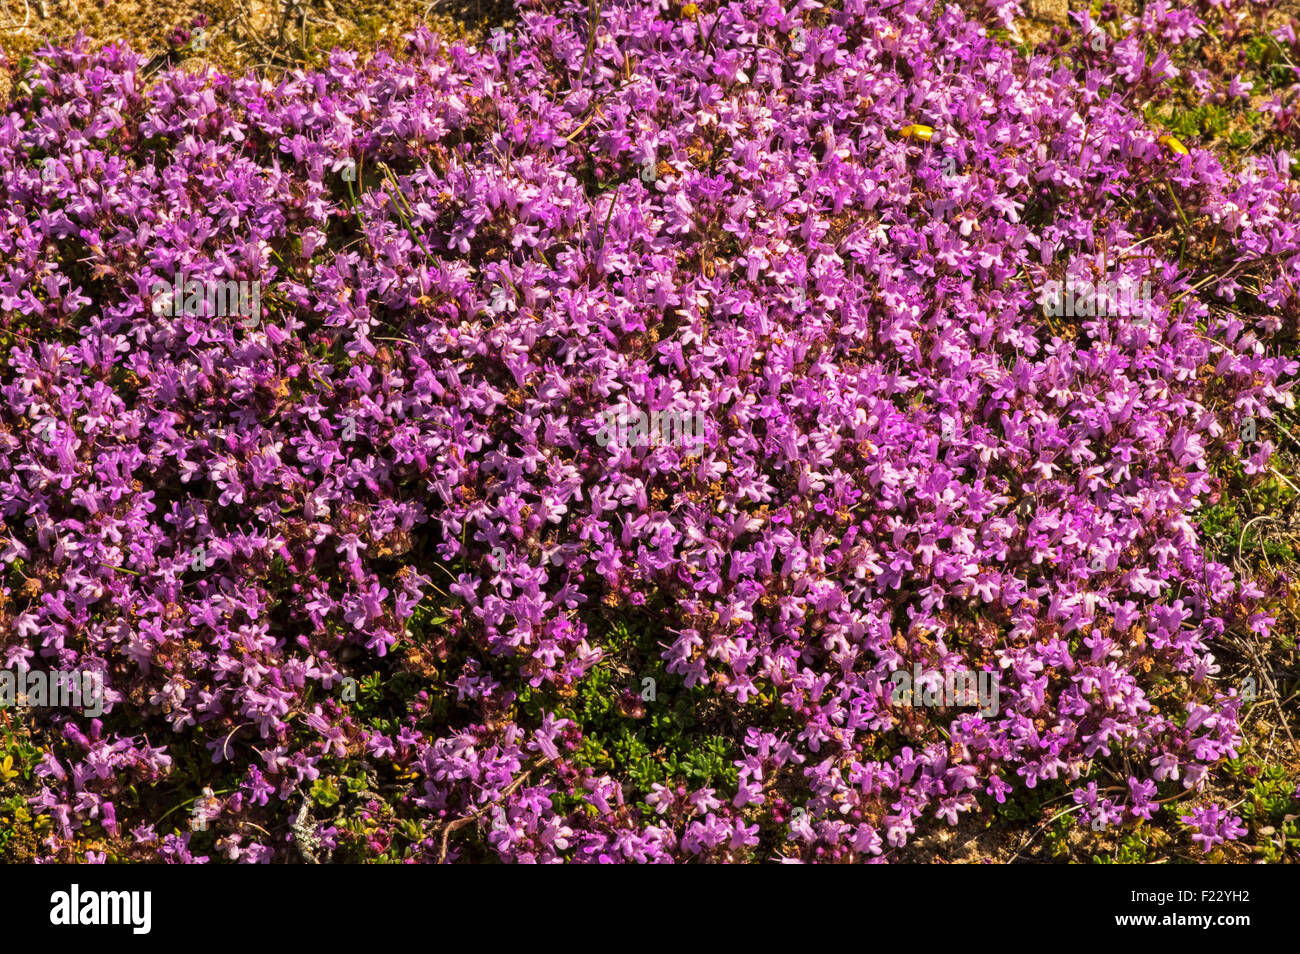 Wild Thyme, Grows on heaths and moors, attractive to bees and many other insects - Stock Image